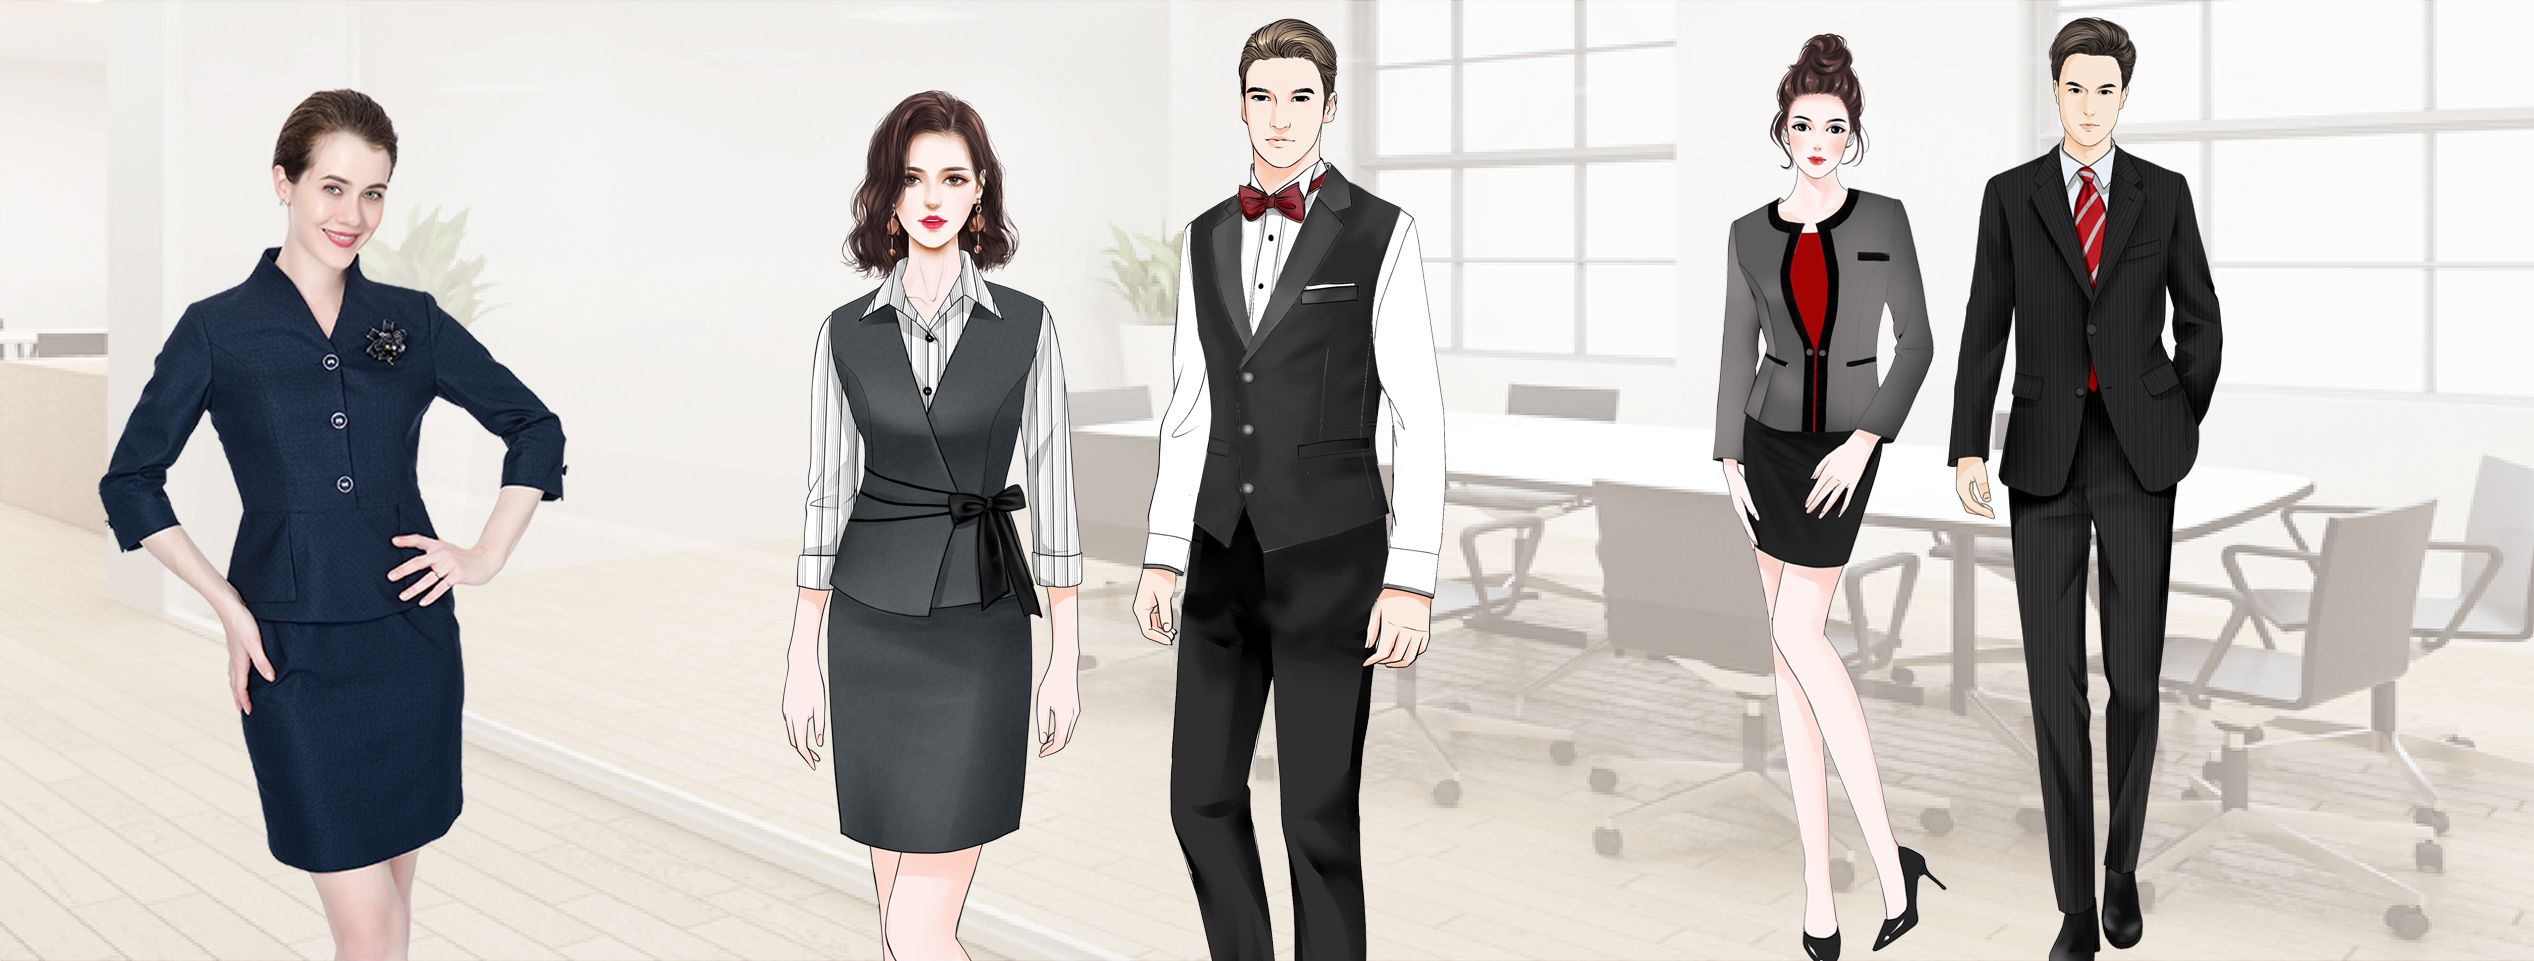 L-Office Uniforms